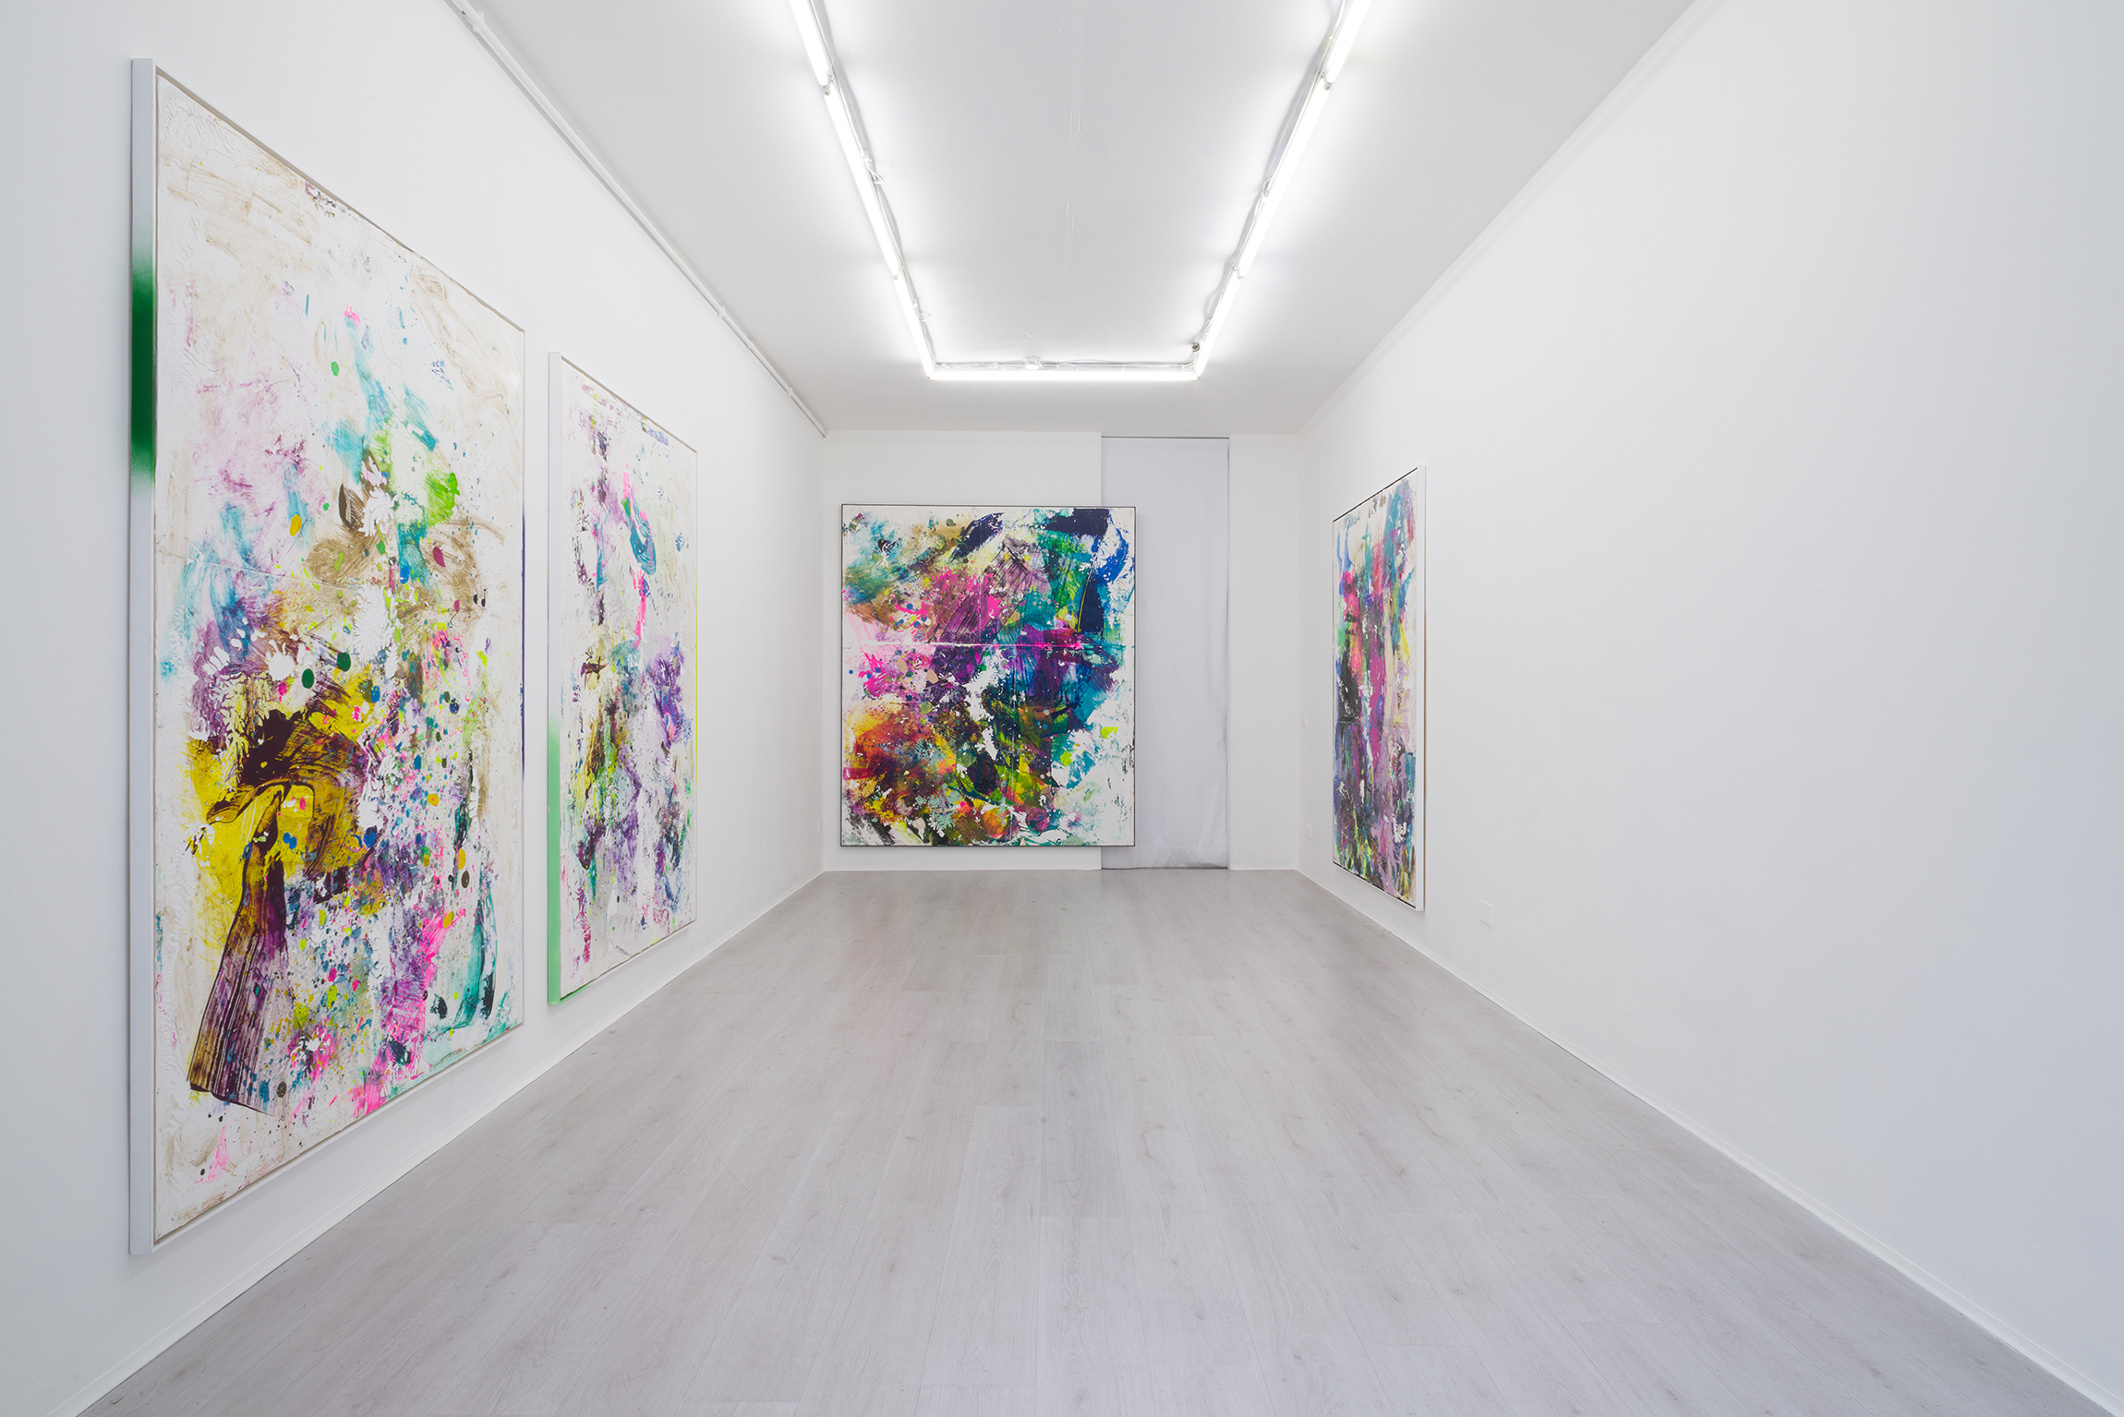 1. Firnt, Tiziano Martini exhibition view at A+B gallery